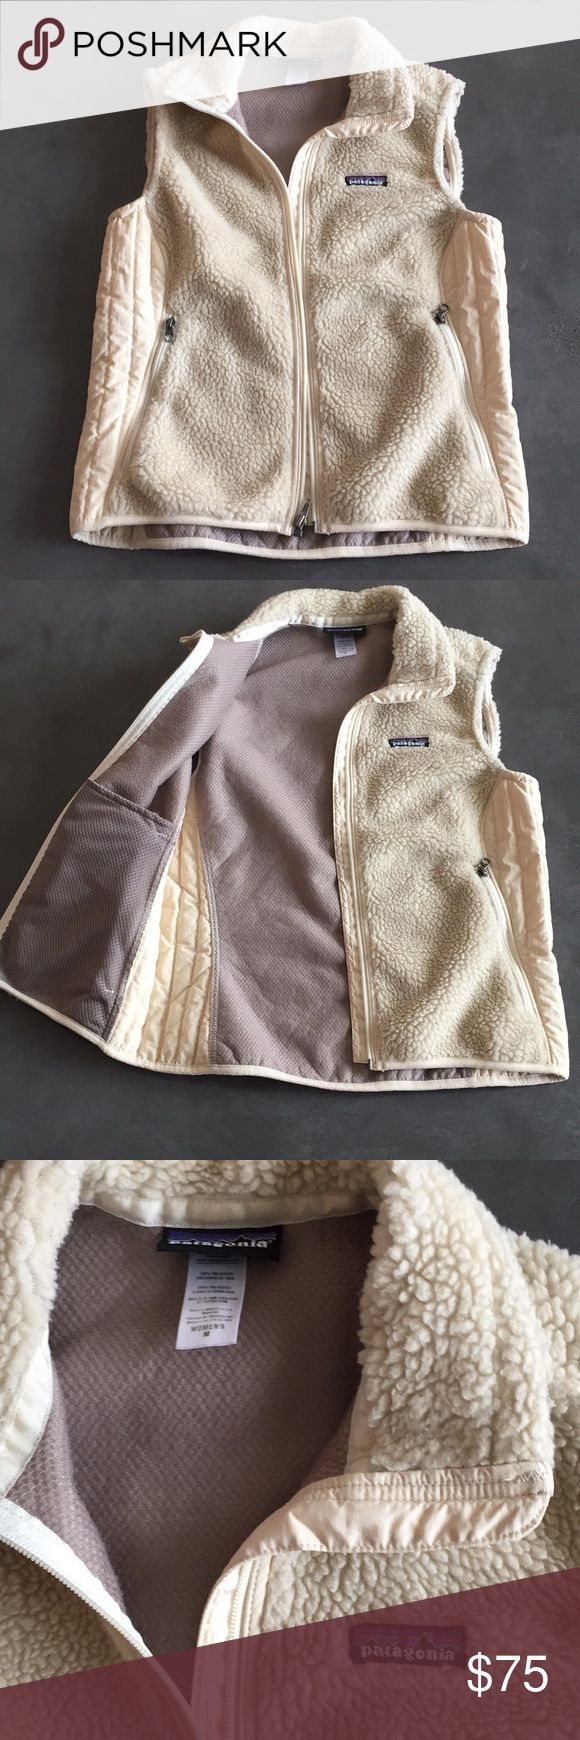 Patagonia fleece vest Cream colored Patagonia vest.  Clean. Hardly worn. Patagonia Jackets & Coats Vests